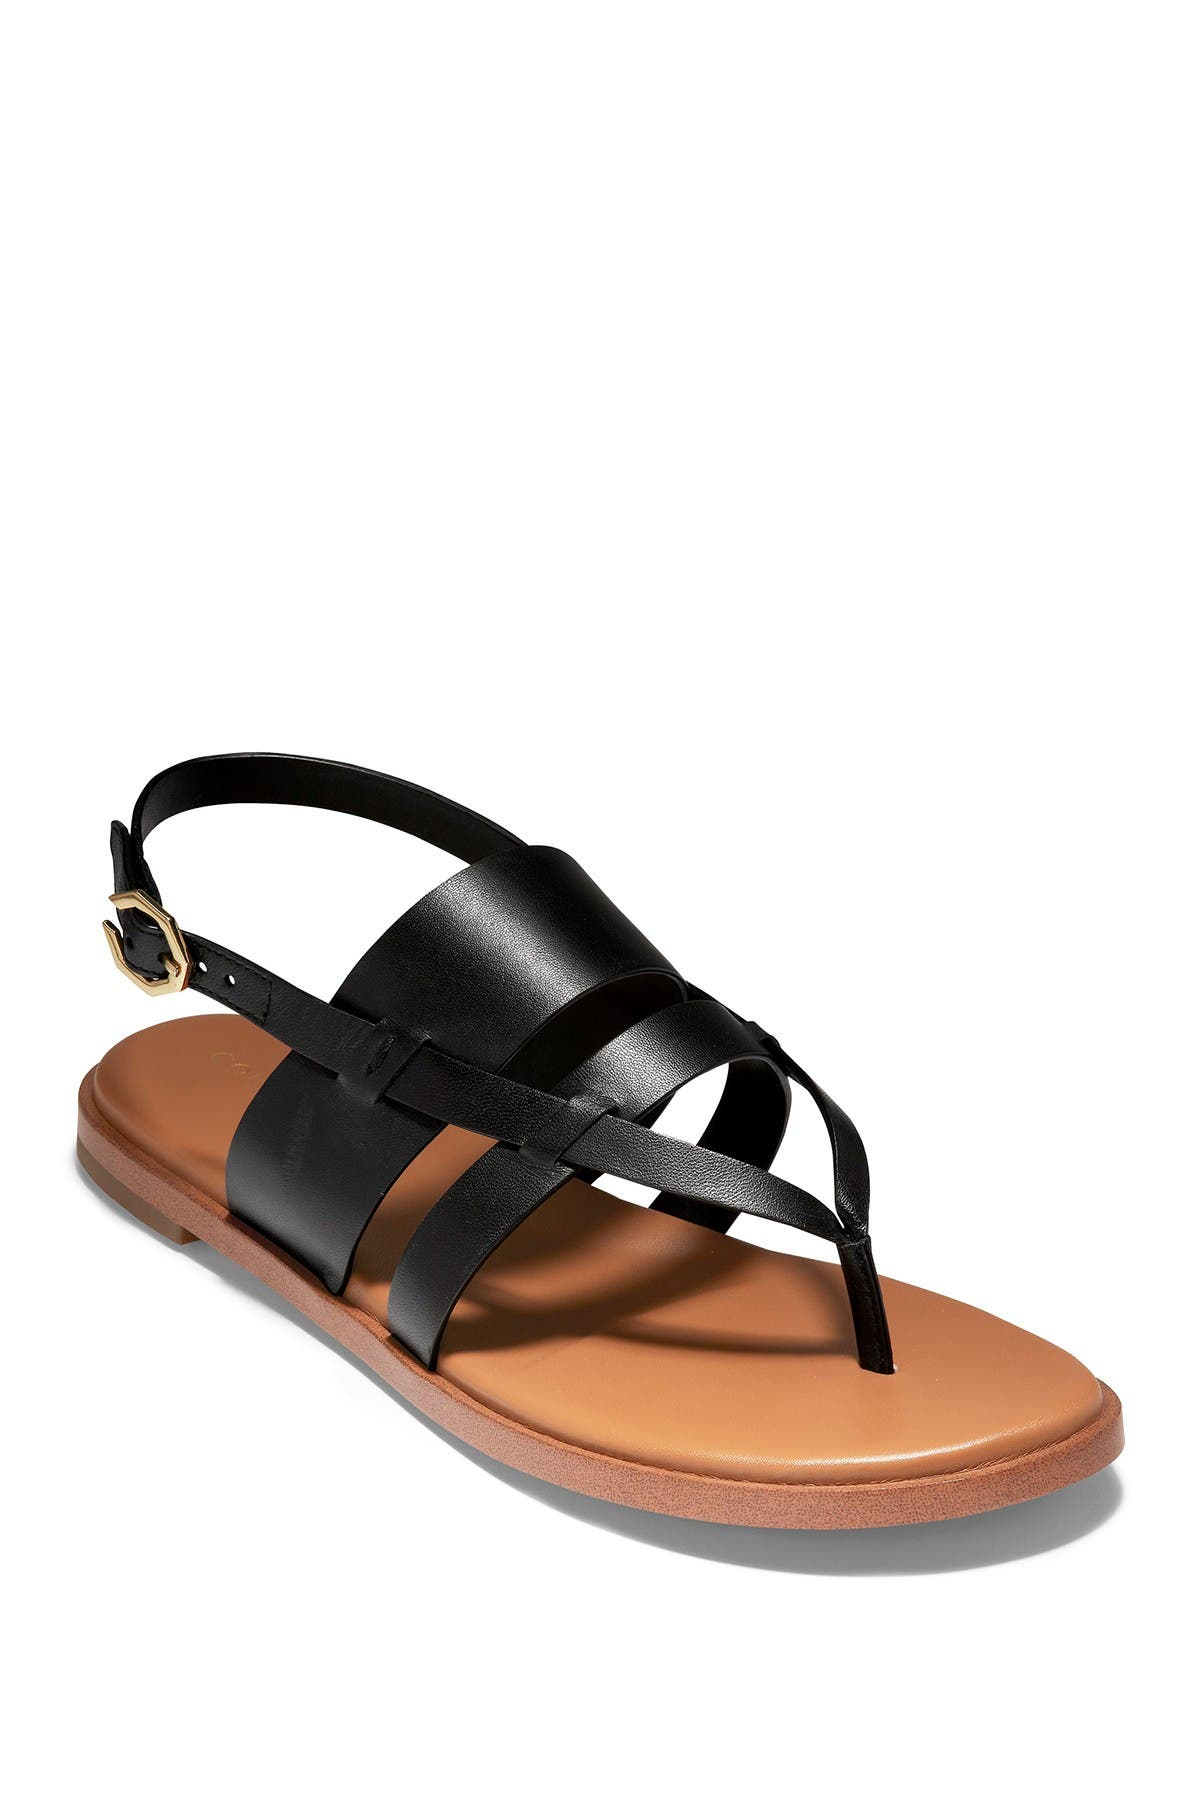 Image of Cole Haan Finley Leather Grand Thong Sandal